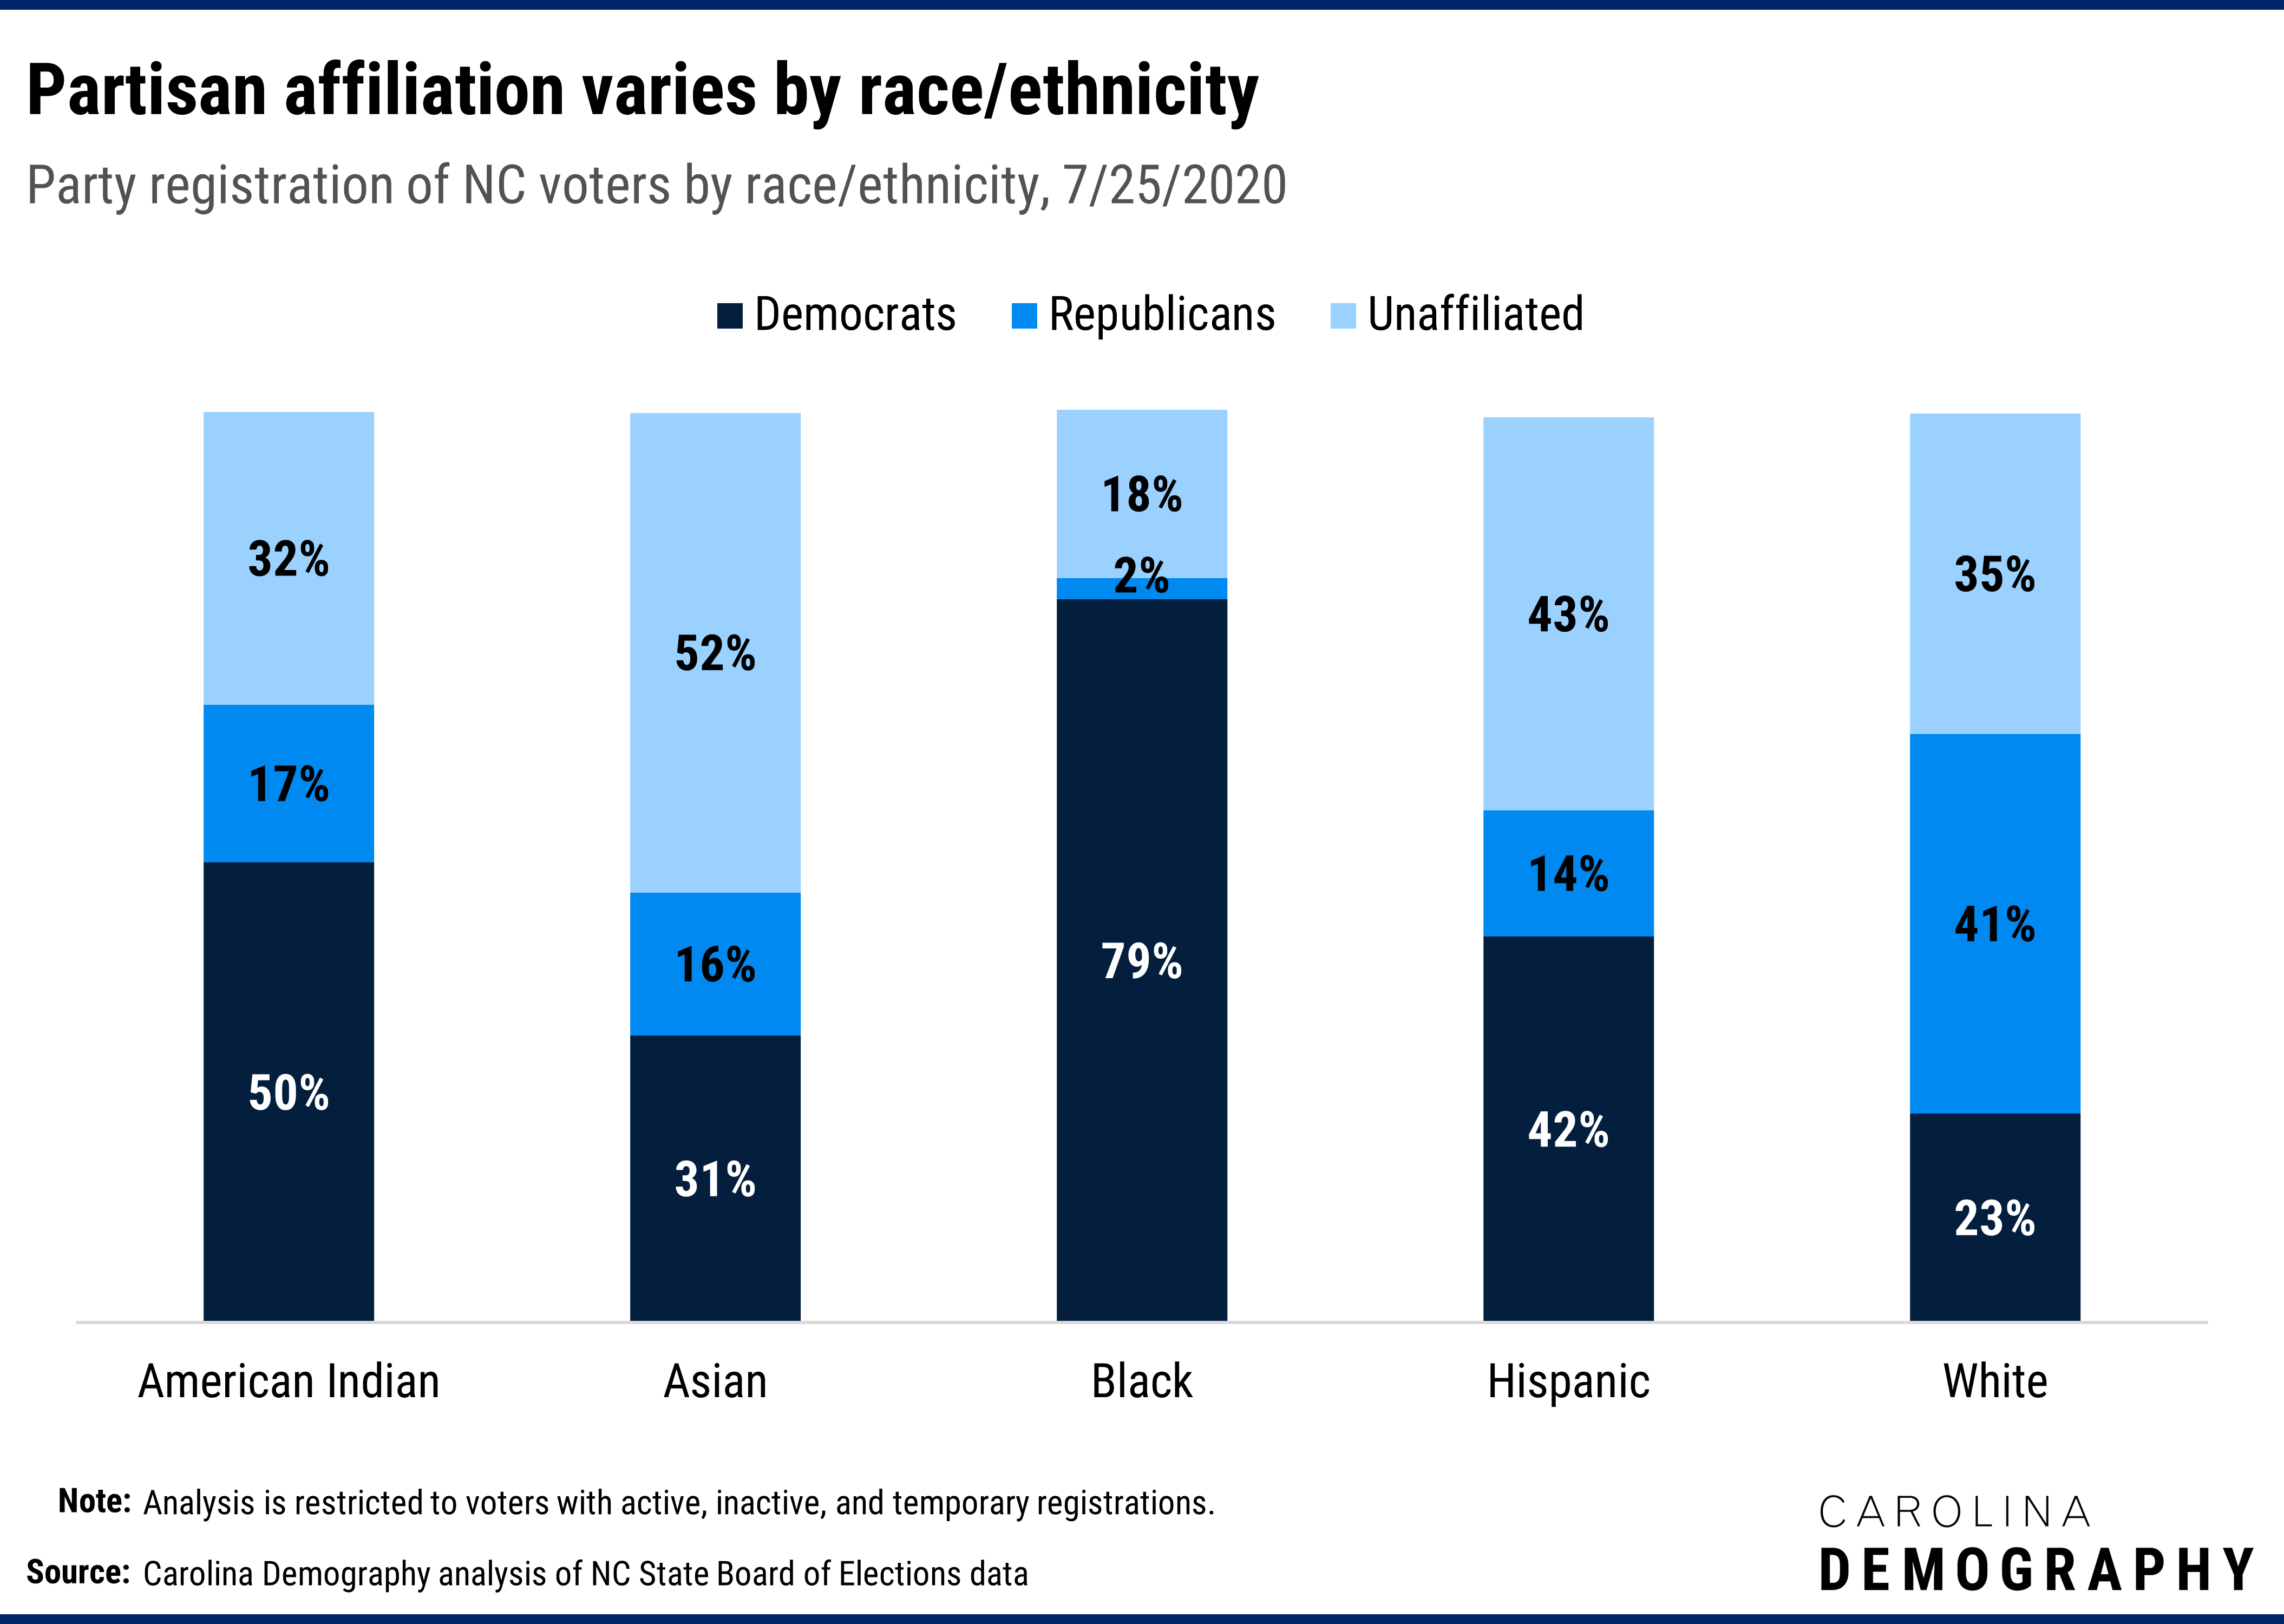 Partisan affiliation varies by race/ethnicity Party registration of NC voters by race/ethnicity, 7/25/2020. Black (79%) and American Indian (50%) voters are most likely to be registered Democrat while white (23%) voters are least likely to be registered Democrat. In contrast, white voters (41%) are most likely to be registered Republican and black (2%) voters are least likely to be registered Republican. Asian (52%) and Hispanic (43%) voters are most likely to be registered unaffiliated, followed by white (35%) and American Indian voters (32%). Black voters (18%) are the least likely to be registered unaffiliated.